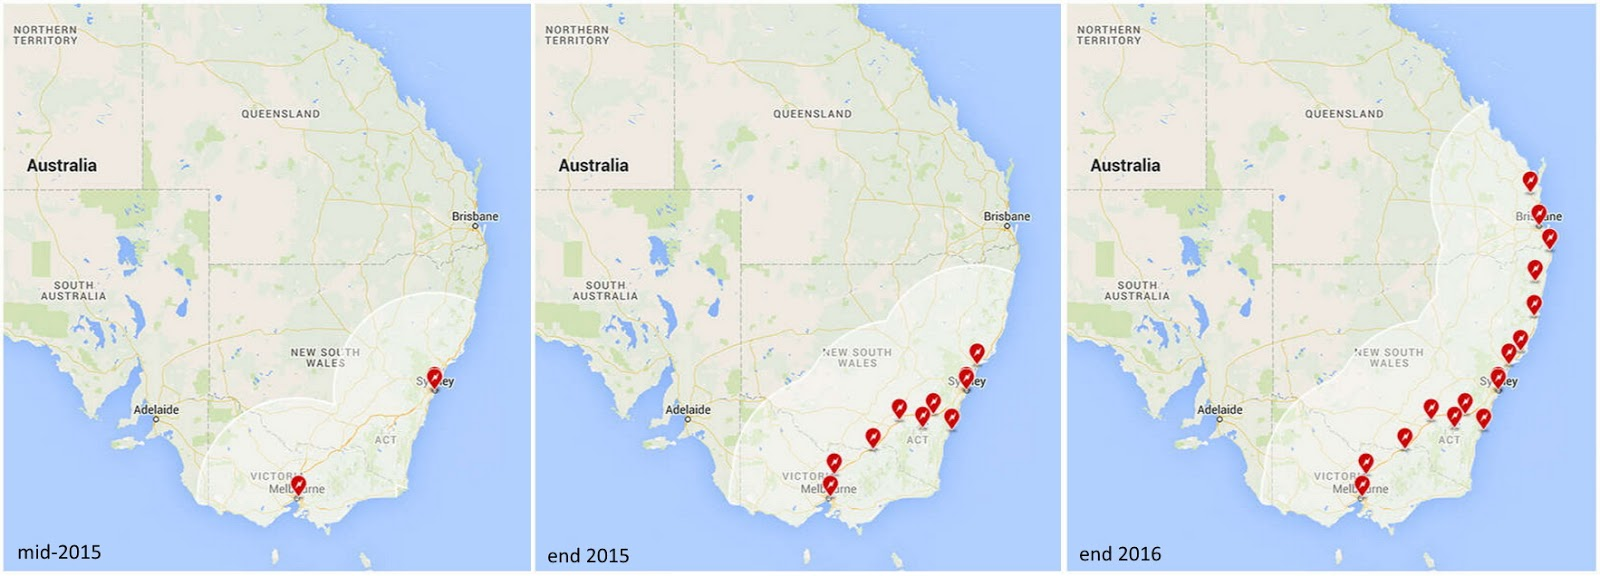 Map of planned Tesla supercharger stations by end of 2016 - Vivid Maps